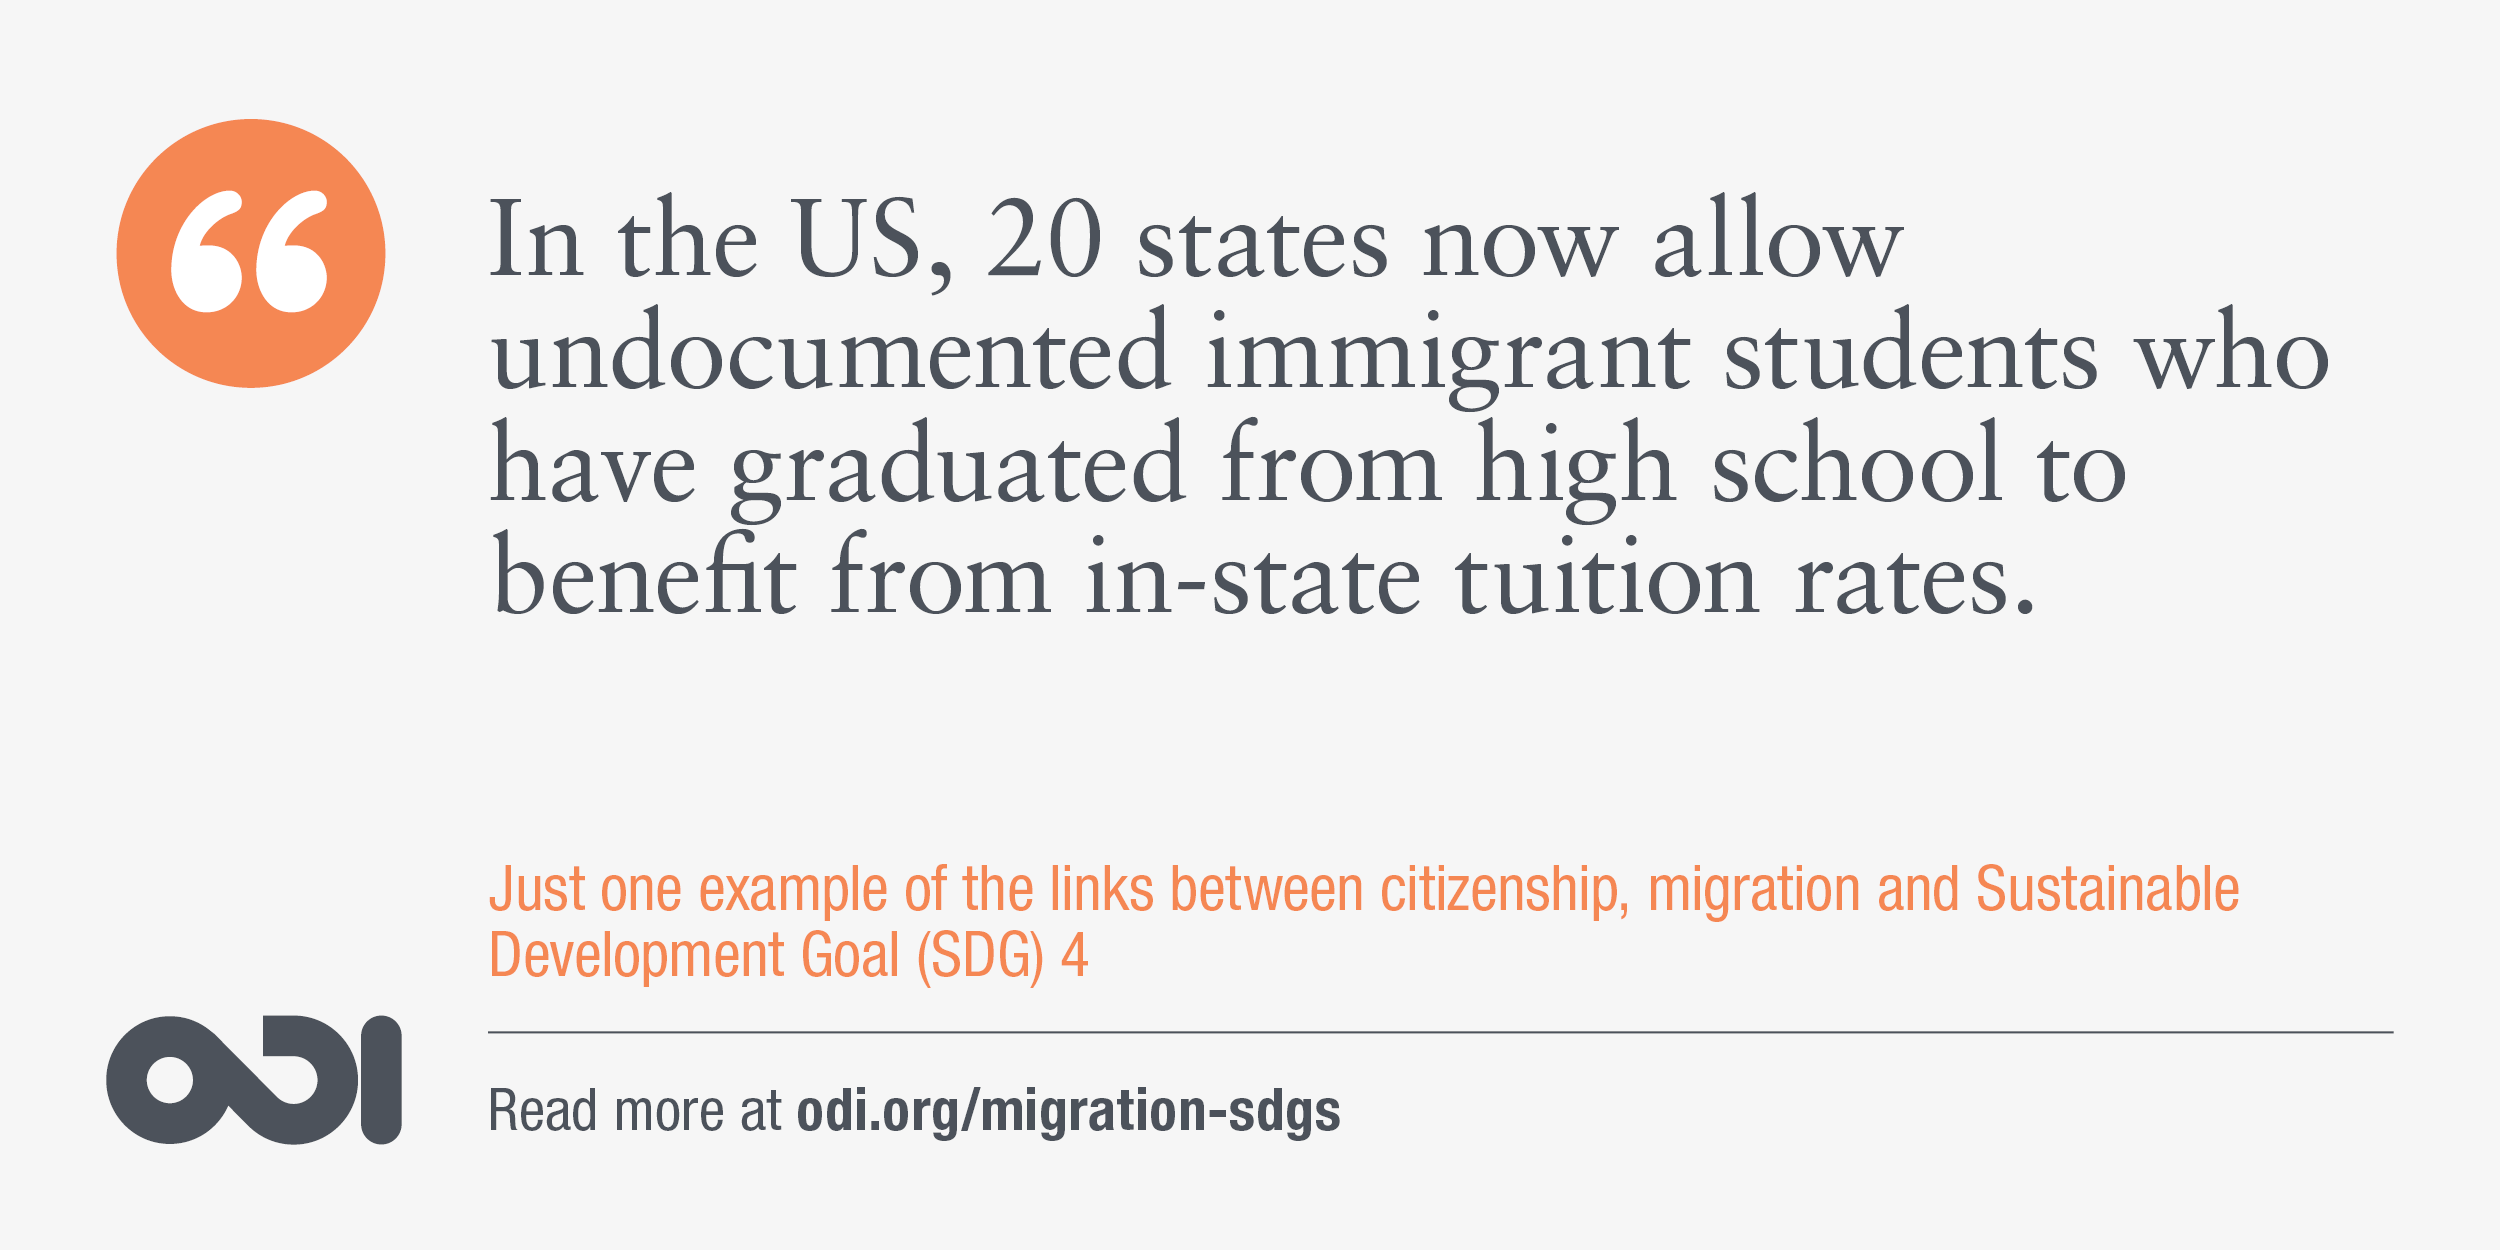 The links between citizenship, migration and SDG 4.